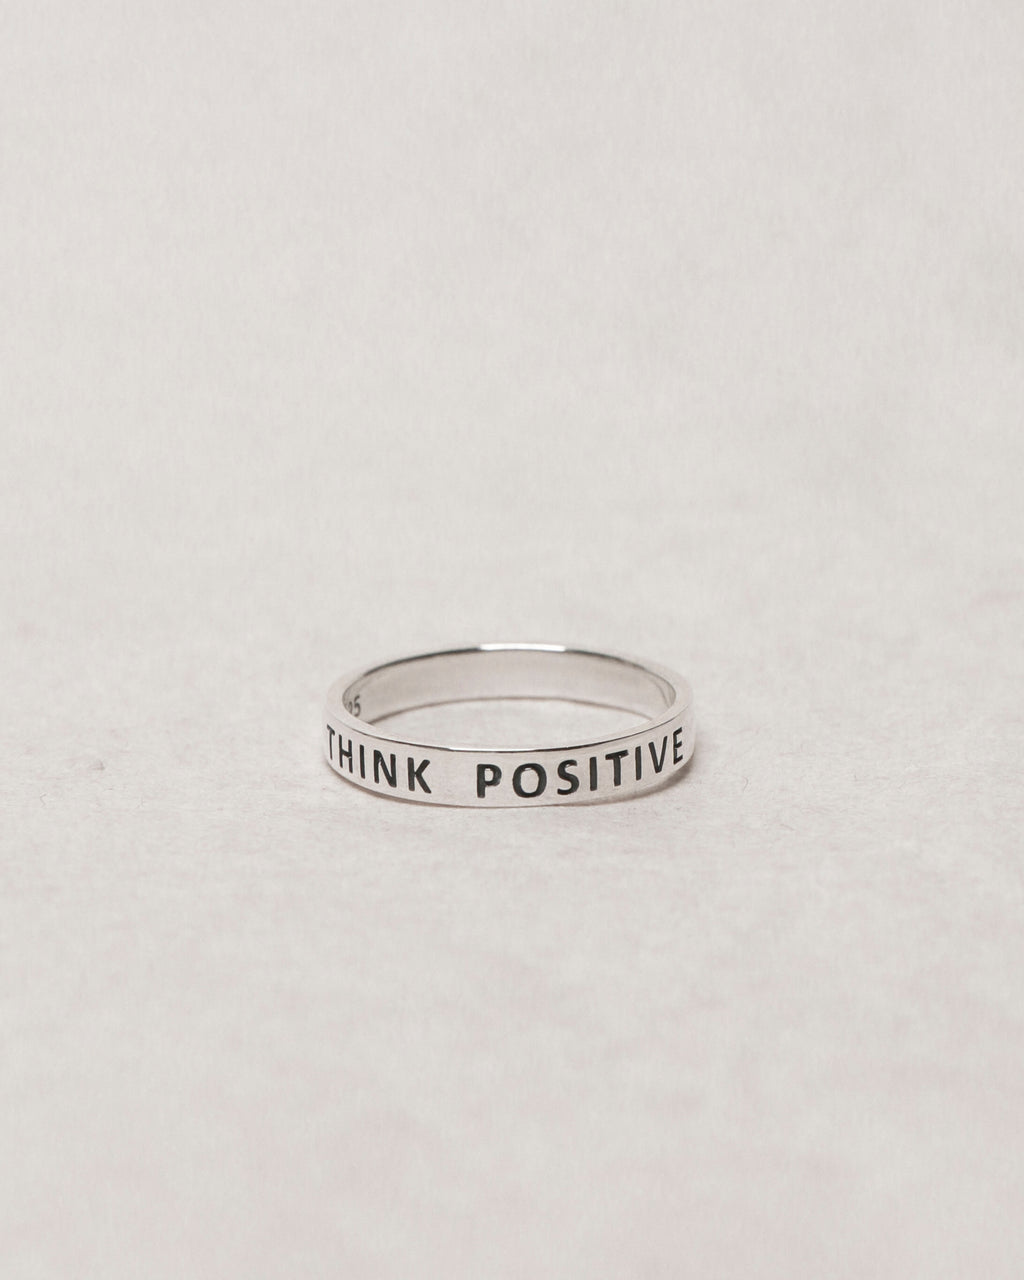 THINK POSITIVE Ring